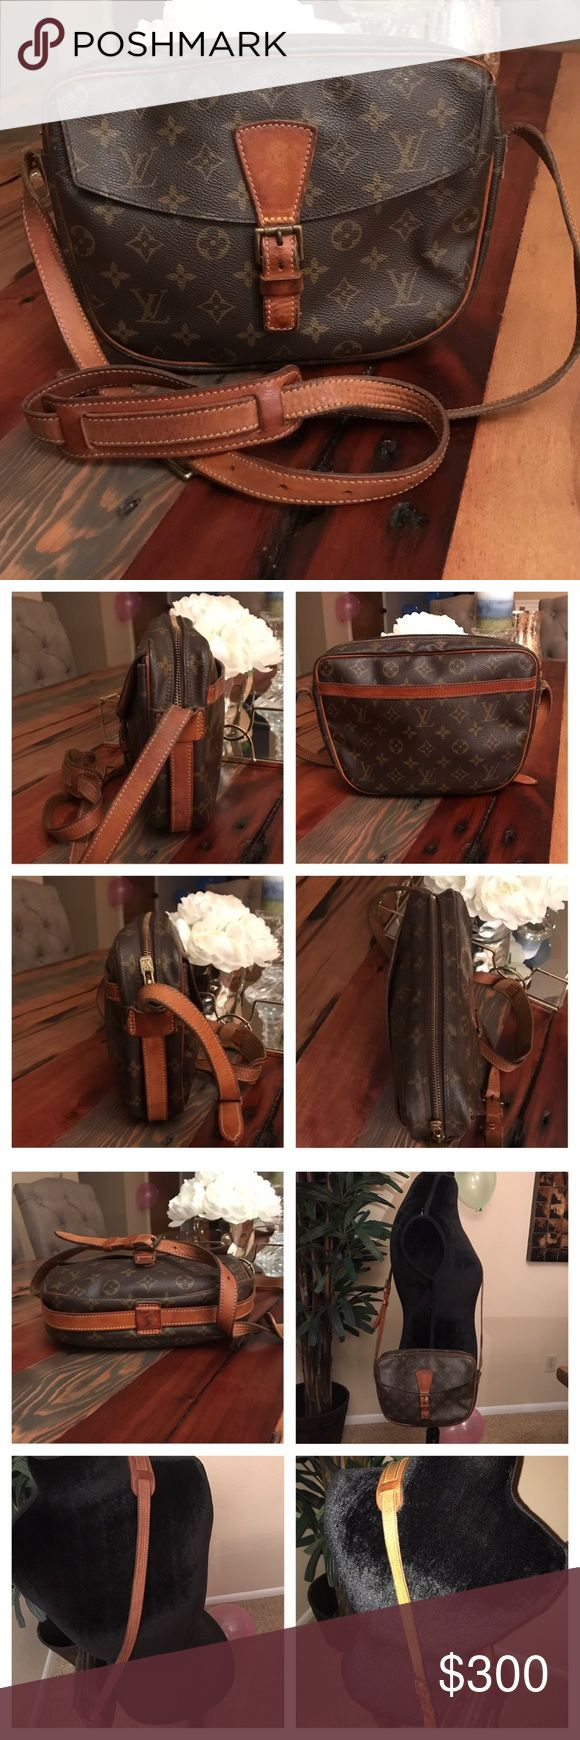 "Authentic Louis Vuitton Jeune Fille GM 100% Authentic Louis Vuitton Jeune Fille GM.  Monogram canvas has no scratches or tears.   Piping is good.  Leather has no cracks and stitching is good.  Strap has wear but no cracks and stitching is good.   Hardware has tarnish.  Pockets are sticky need cleaning.   Inside main area is clean and nice.  W9.84xH7.48xD2.16"".  I do not trade. Louis Vuitton Bags Crossbody Bags"